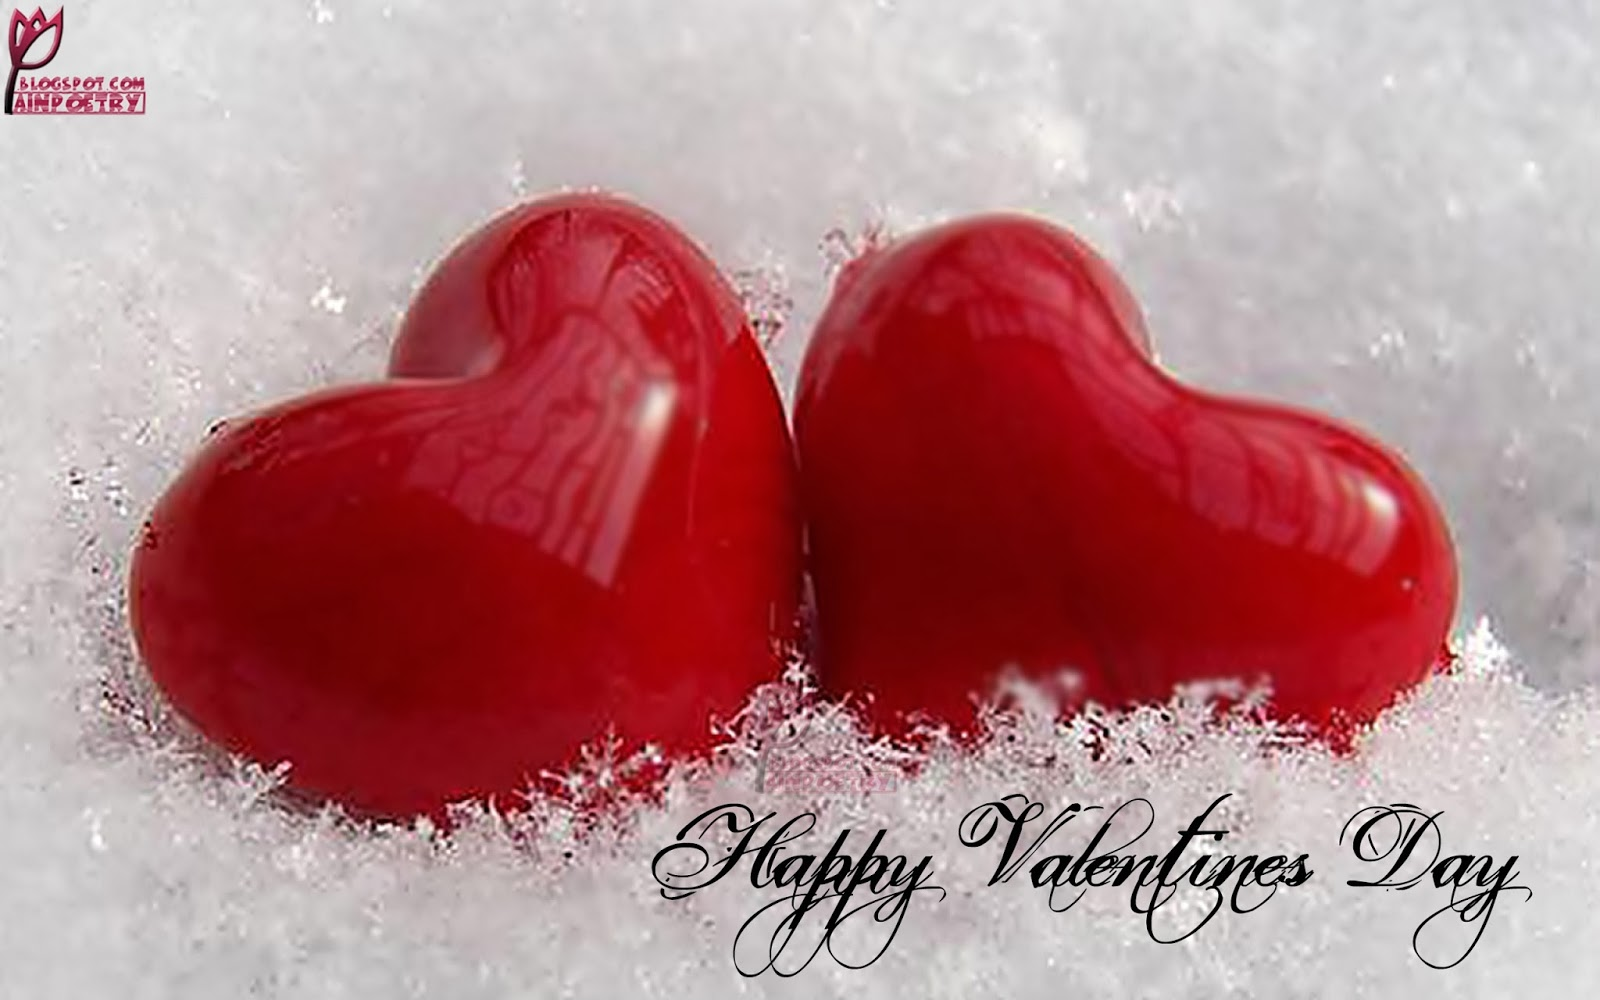 Loving Two Hearts In Valentines Day Image Wallpaper Photo Image HD